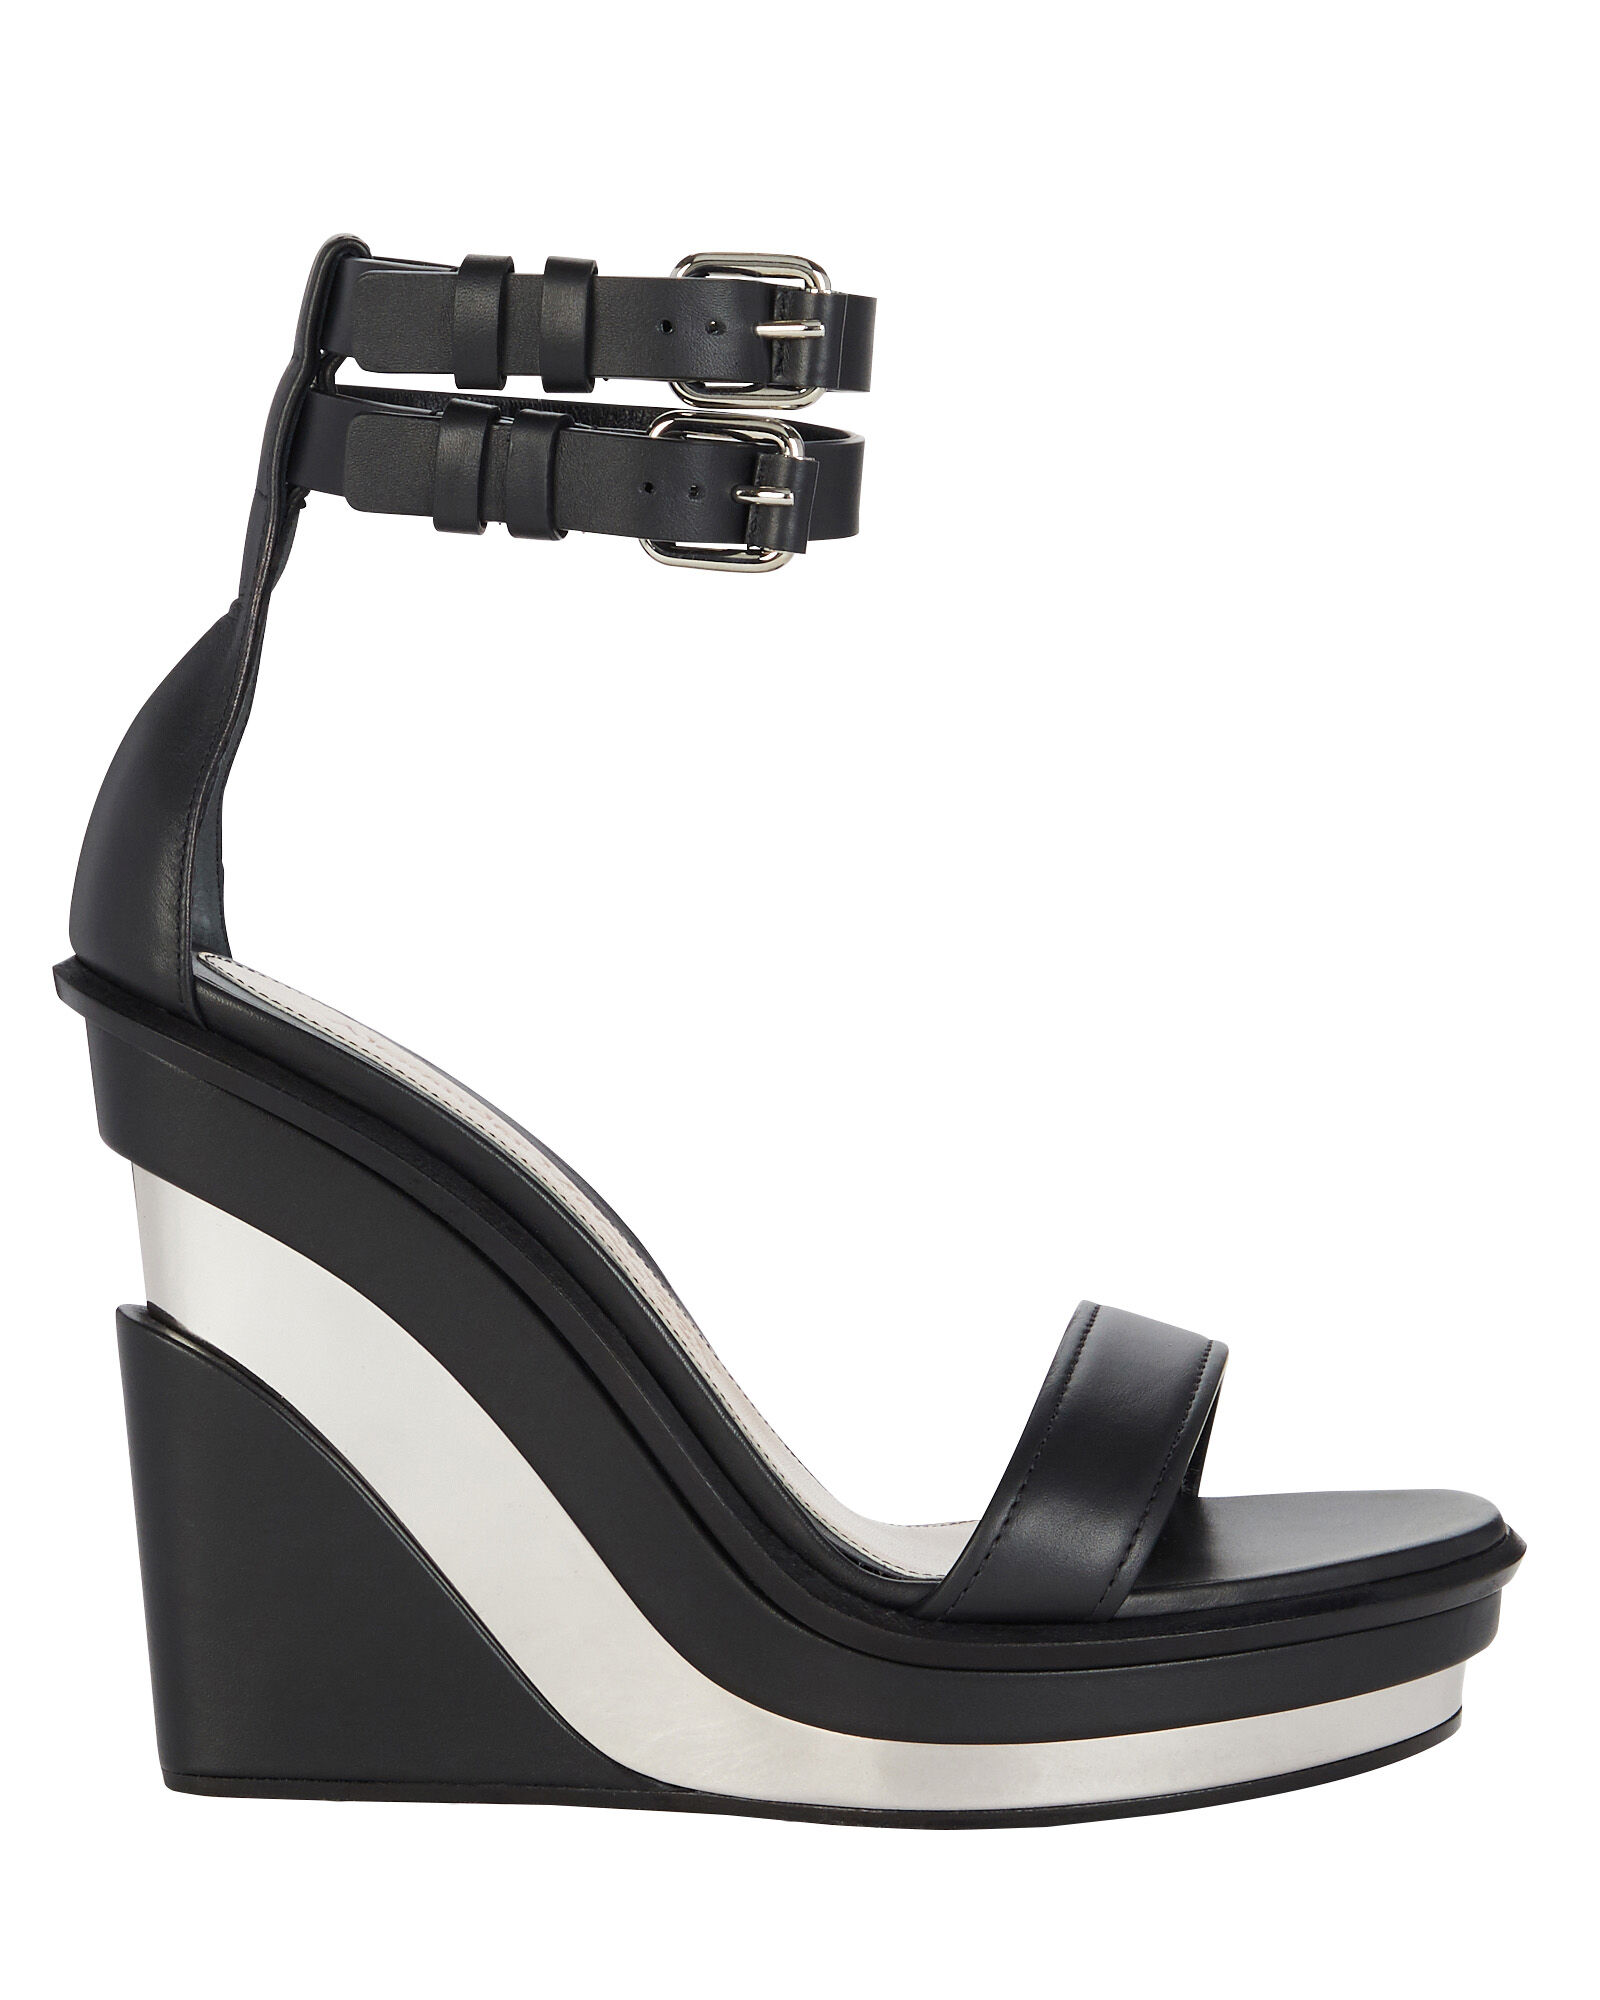 Trompe L'oeil Wedge Sandals, BLACK, hi-res